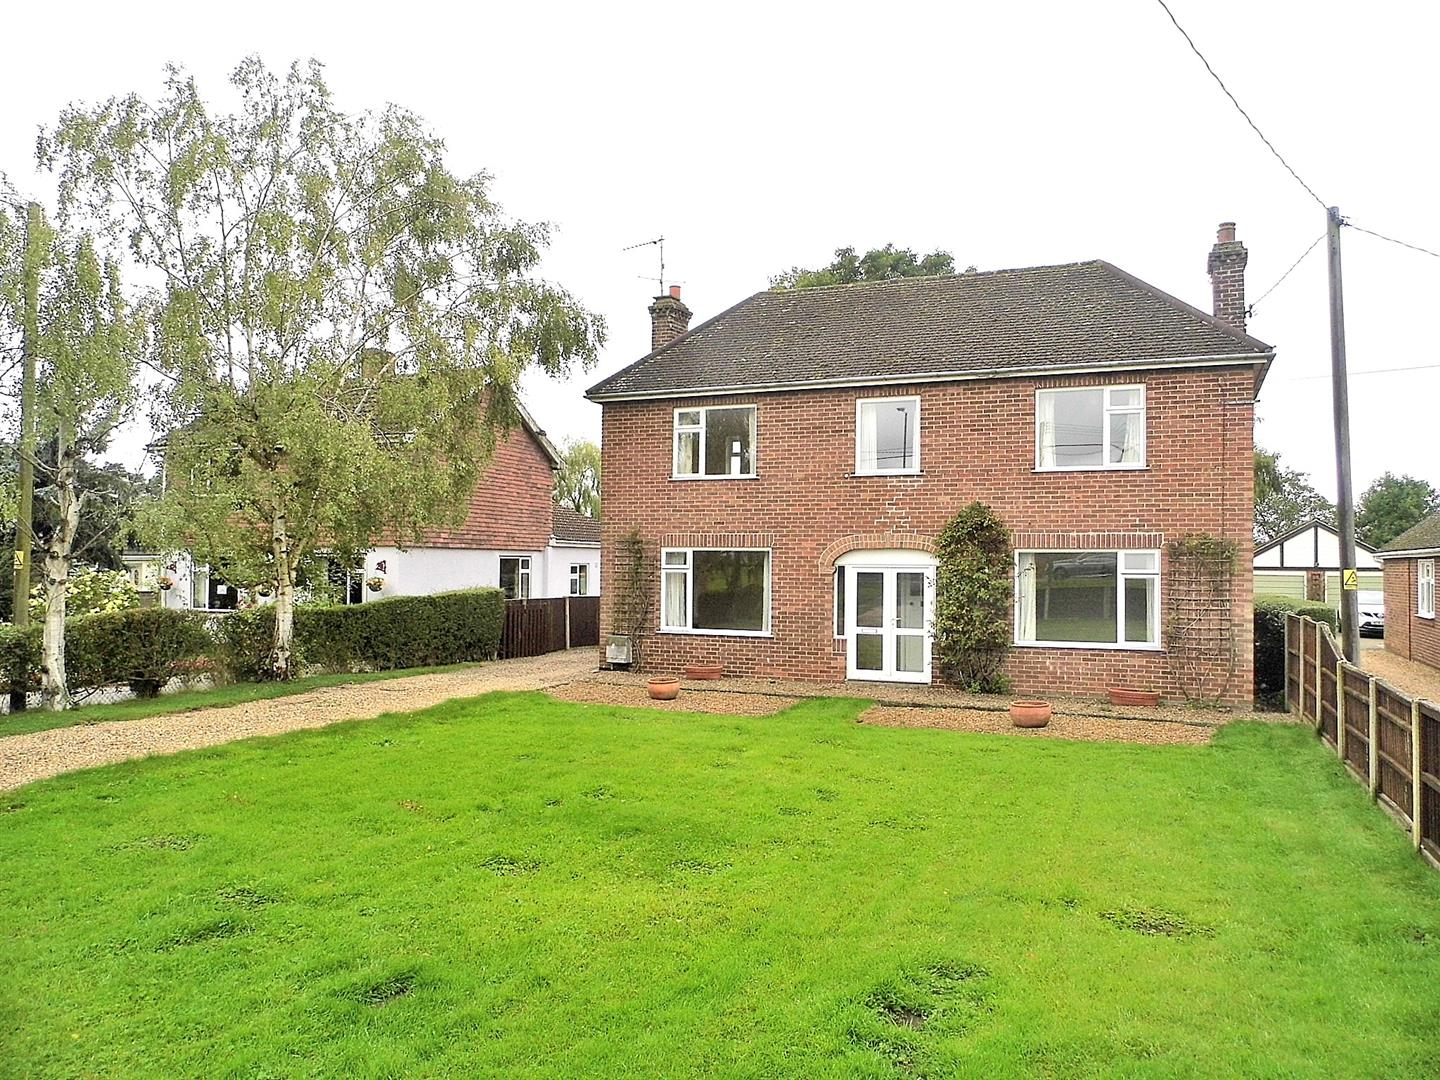 4 bed detached house for sale in King's Lynn, PE33 0ND, PE33